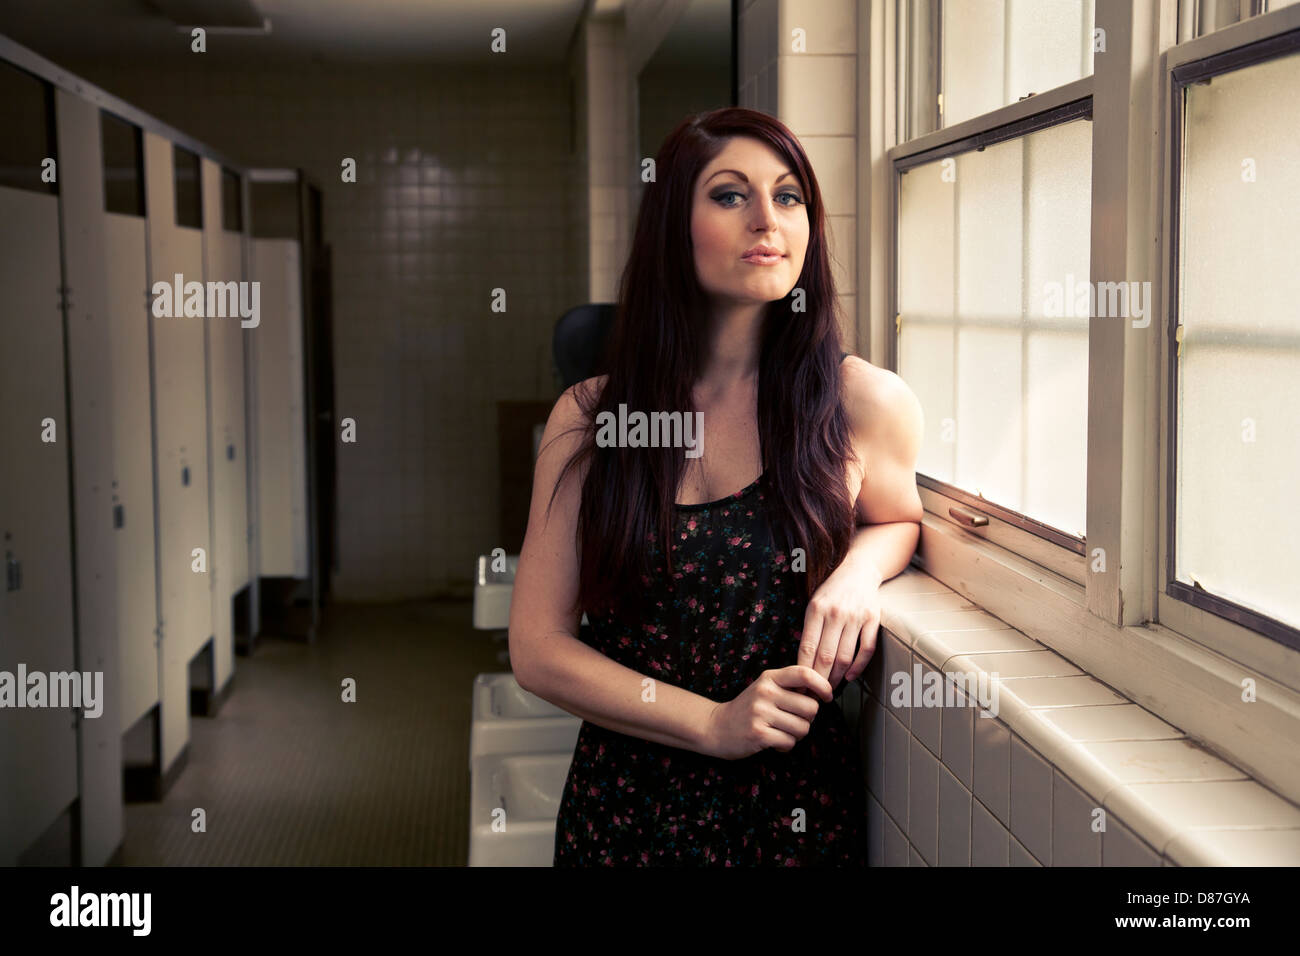 Woman standing next to window in public bathroom - Stock Image